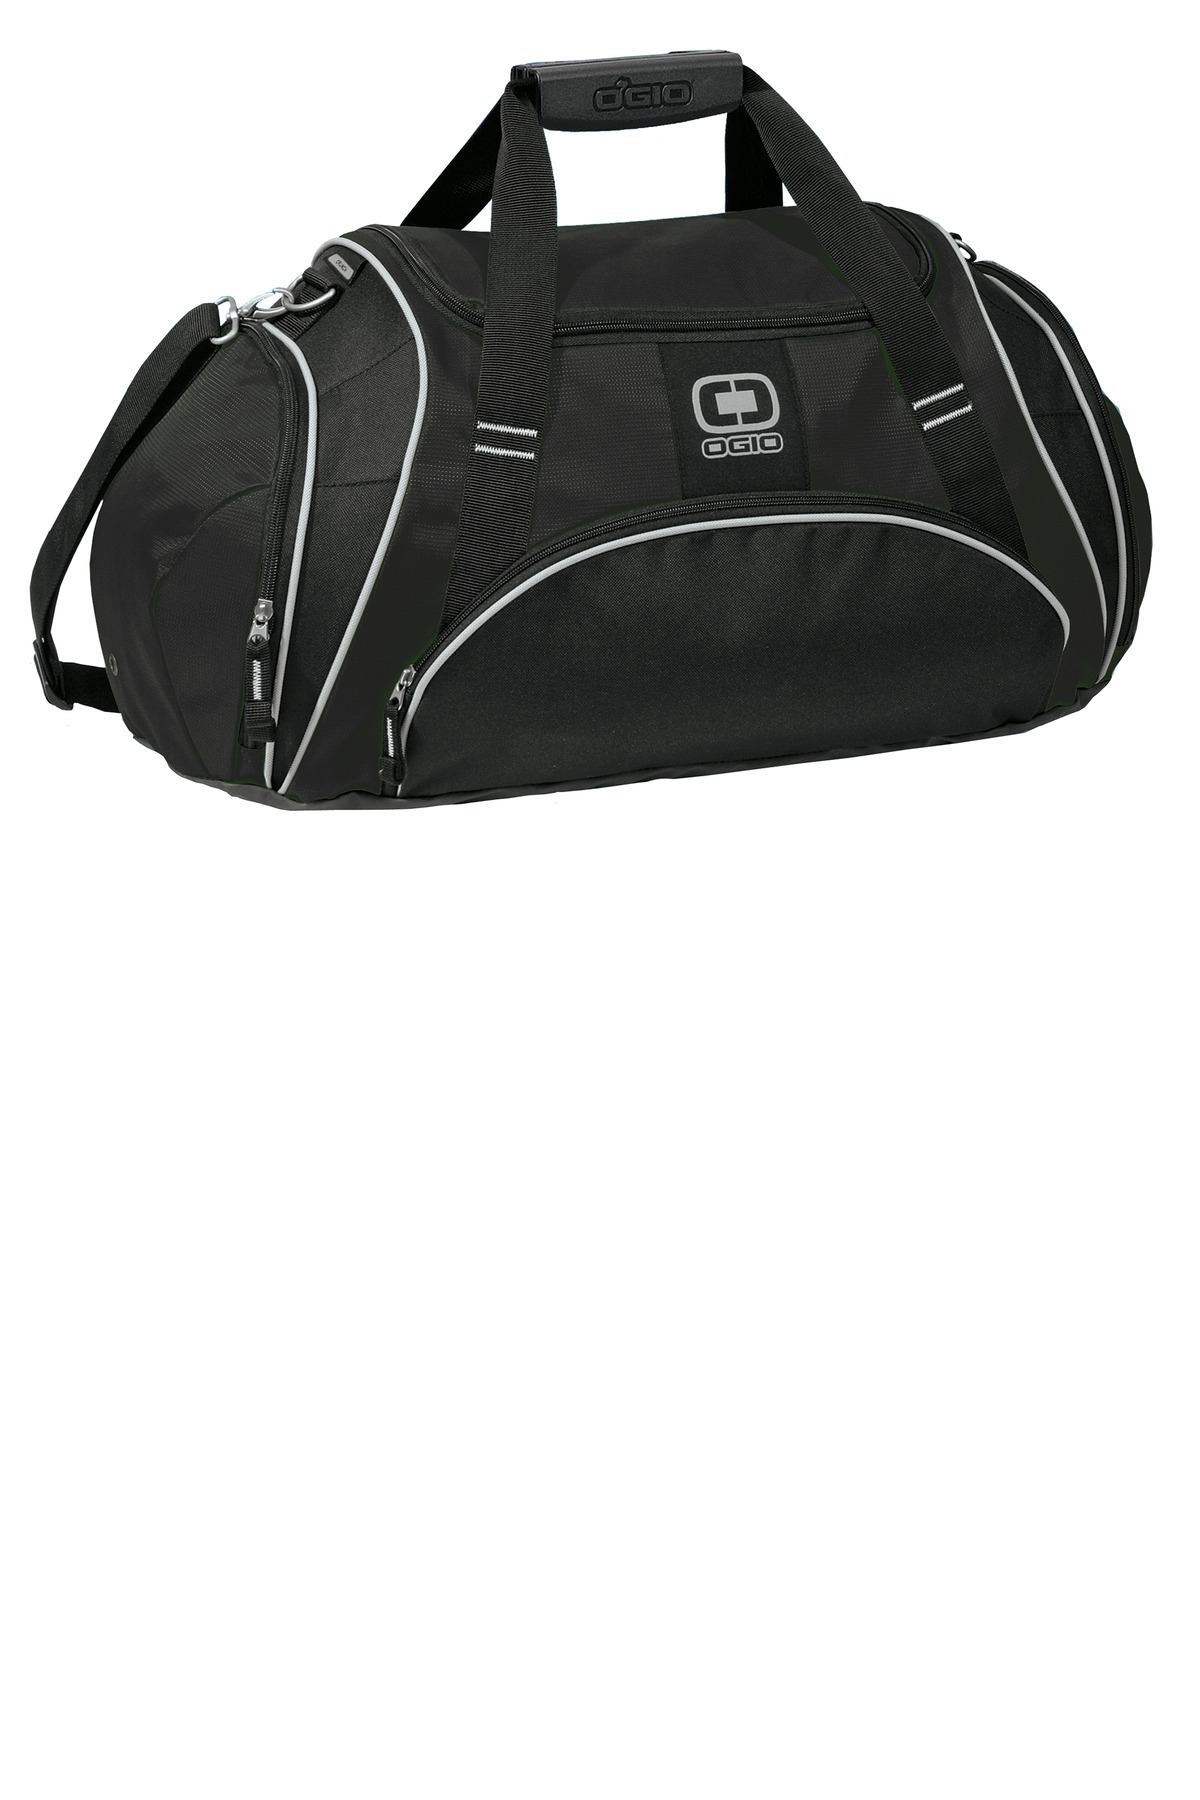 OGIO ®  - Crunch Duffel. 108085 - Black